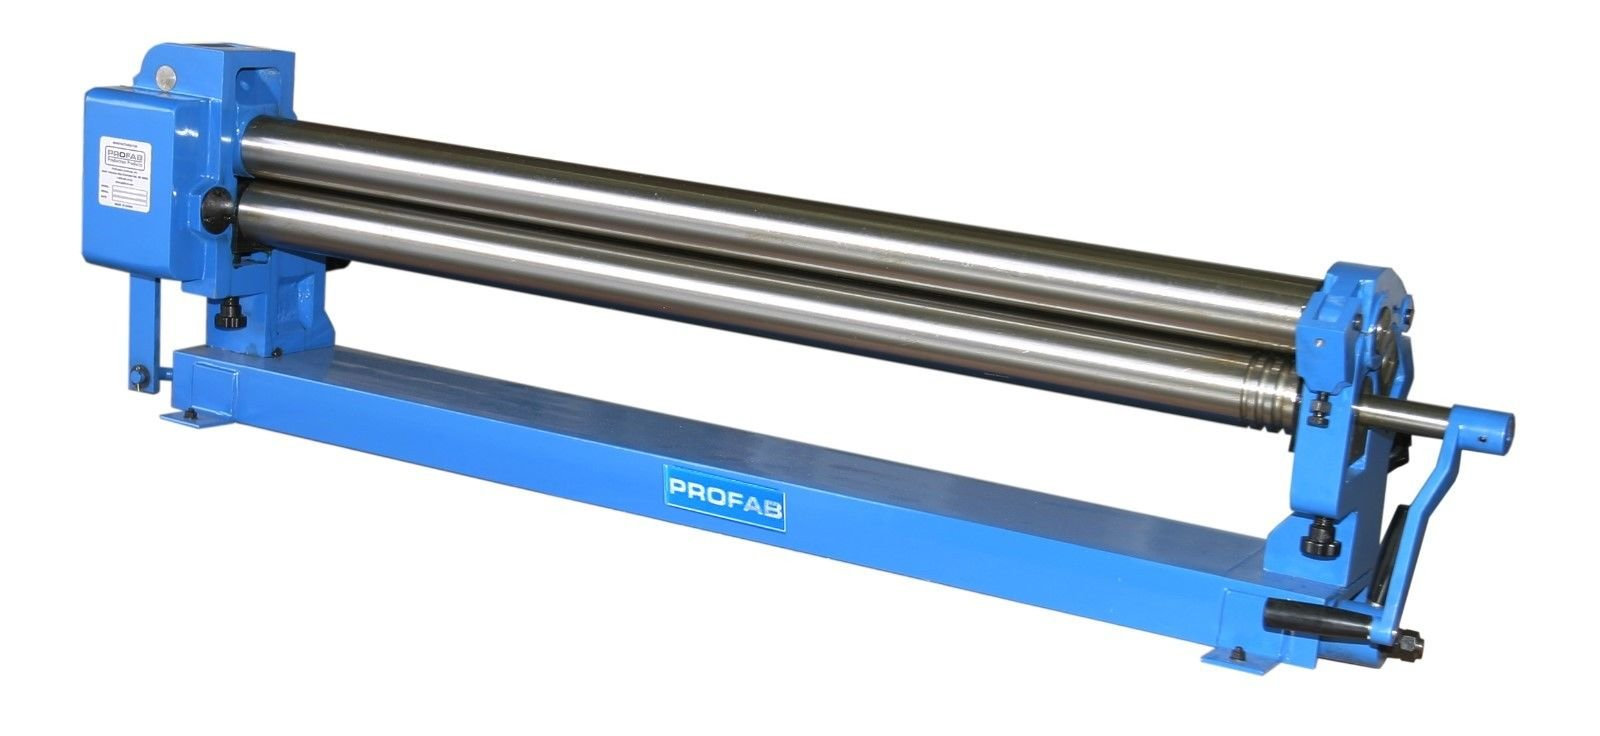 PROFAB Manual Slip Roller - Bench Mount - 48'' Long, 16 GA, 3'' Roll Diameter